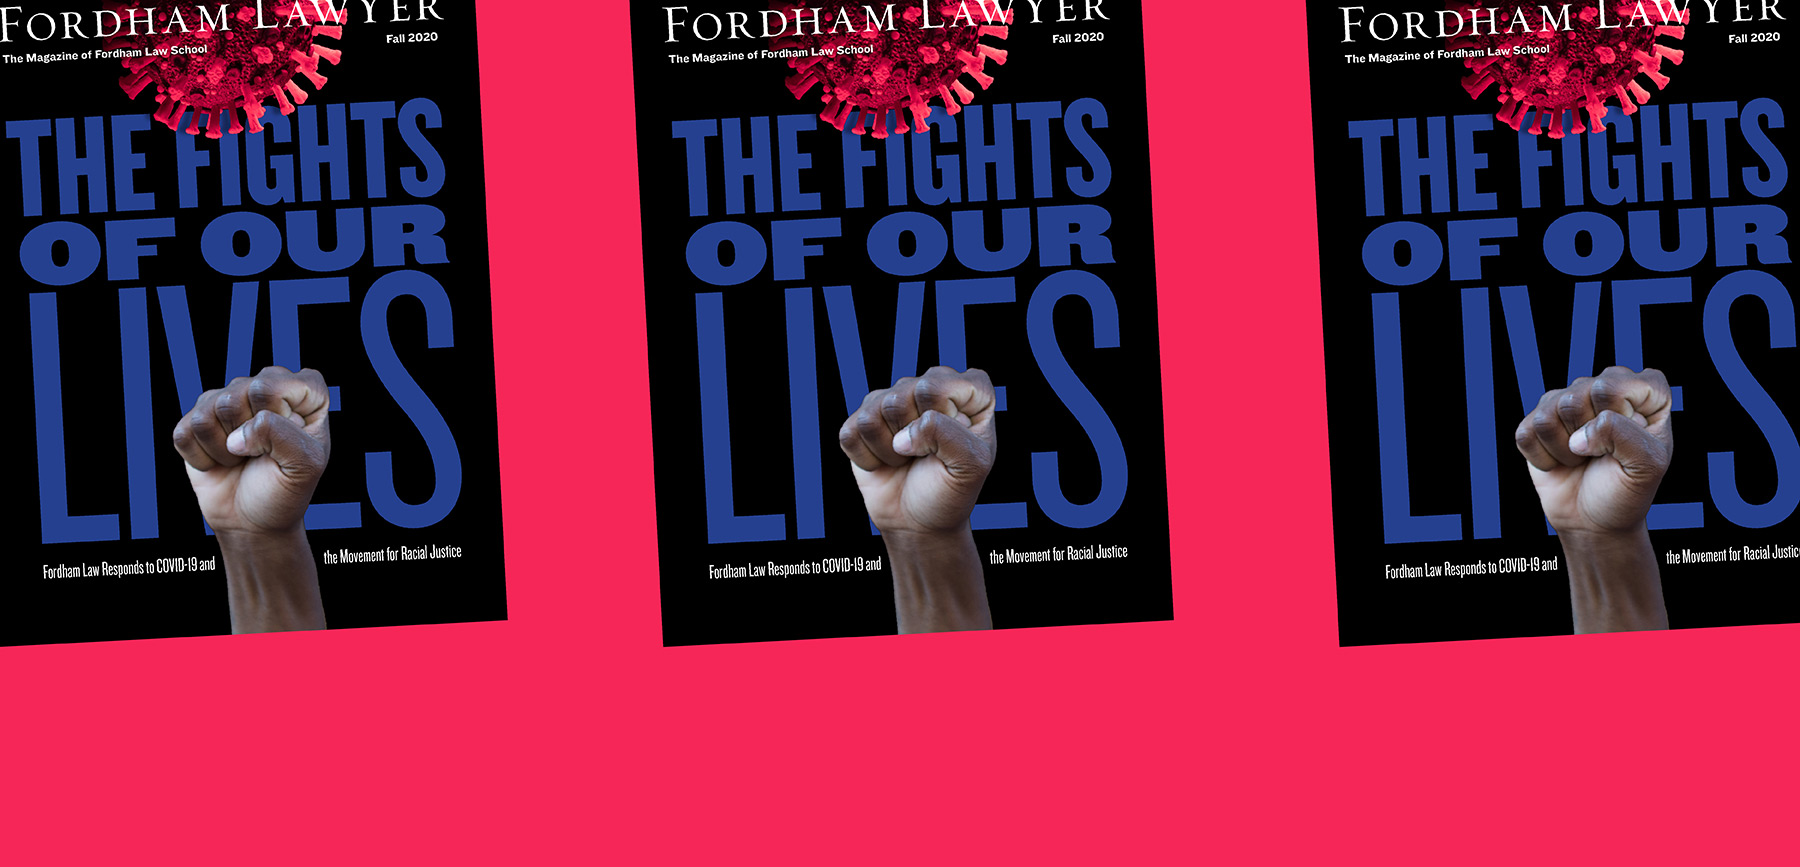 Fordham Lawyer Magazine Out Now